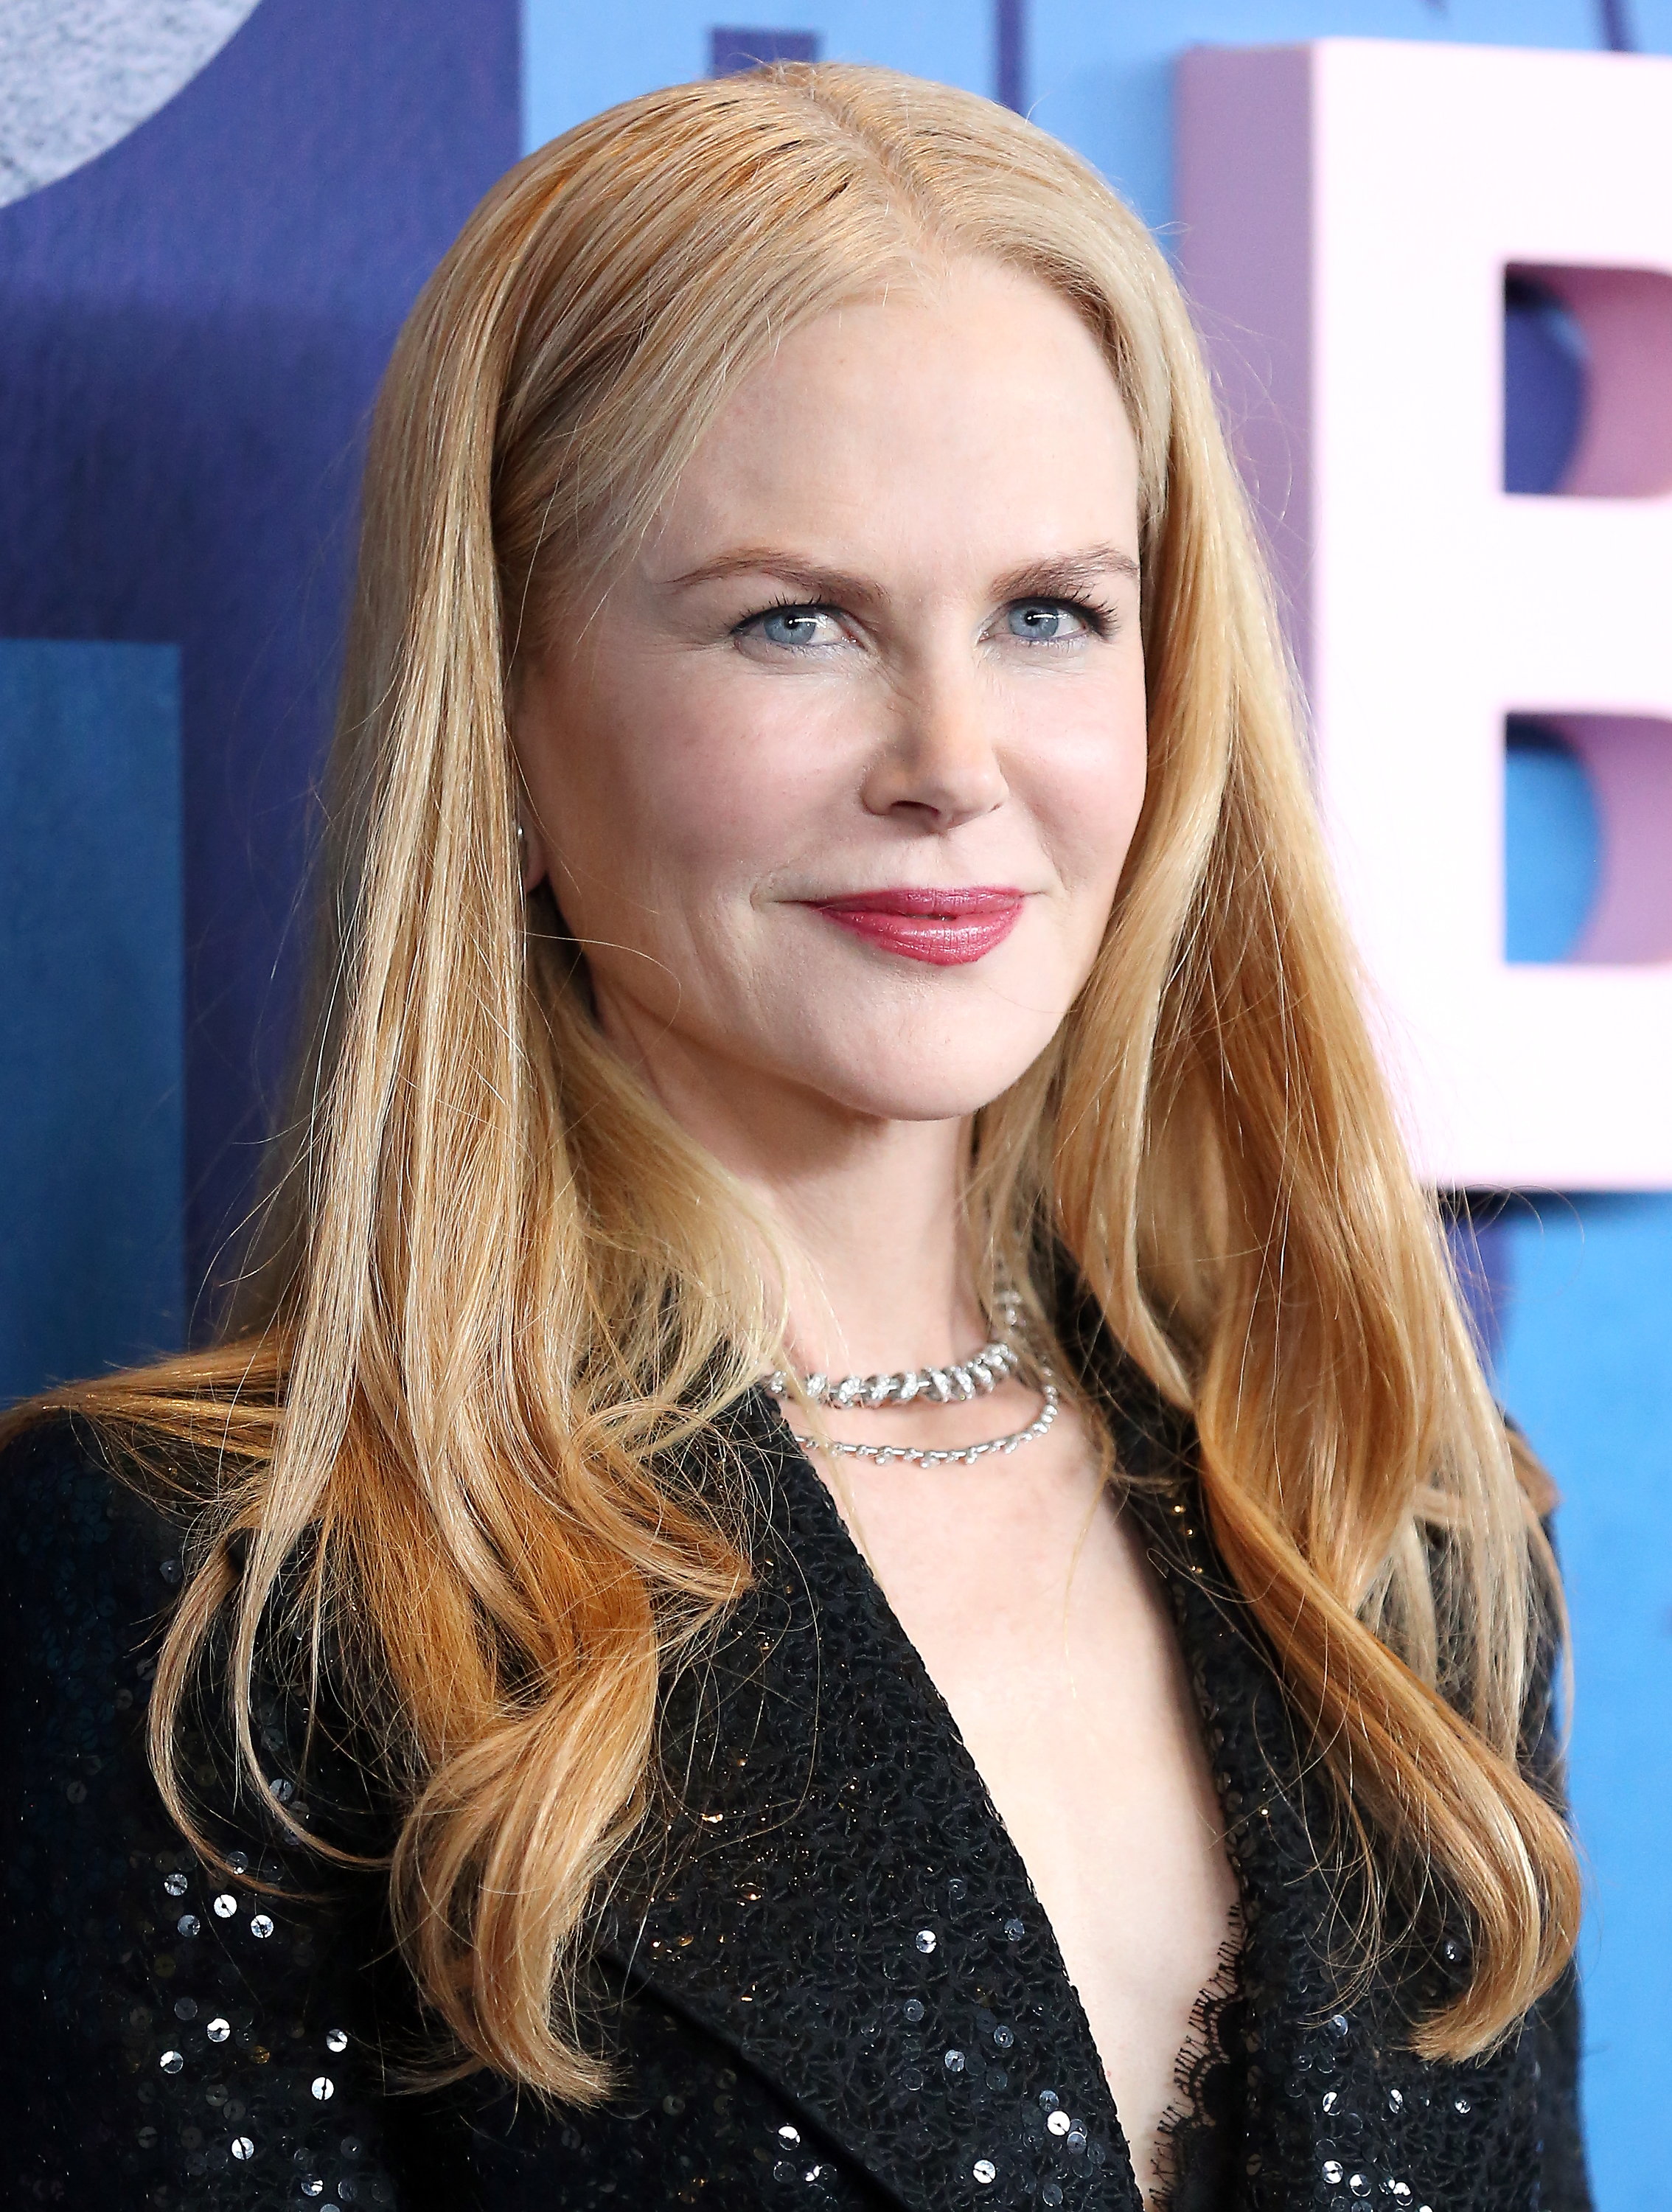 Nicole Kidman Just Shared a Rare Photo of Her Daughters